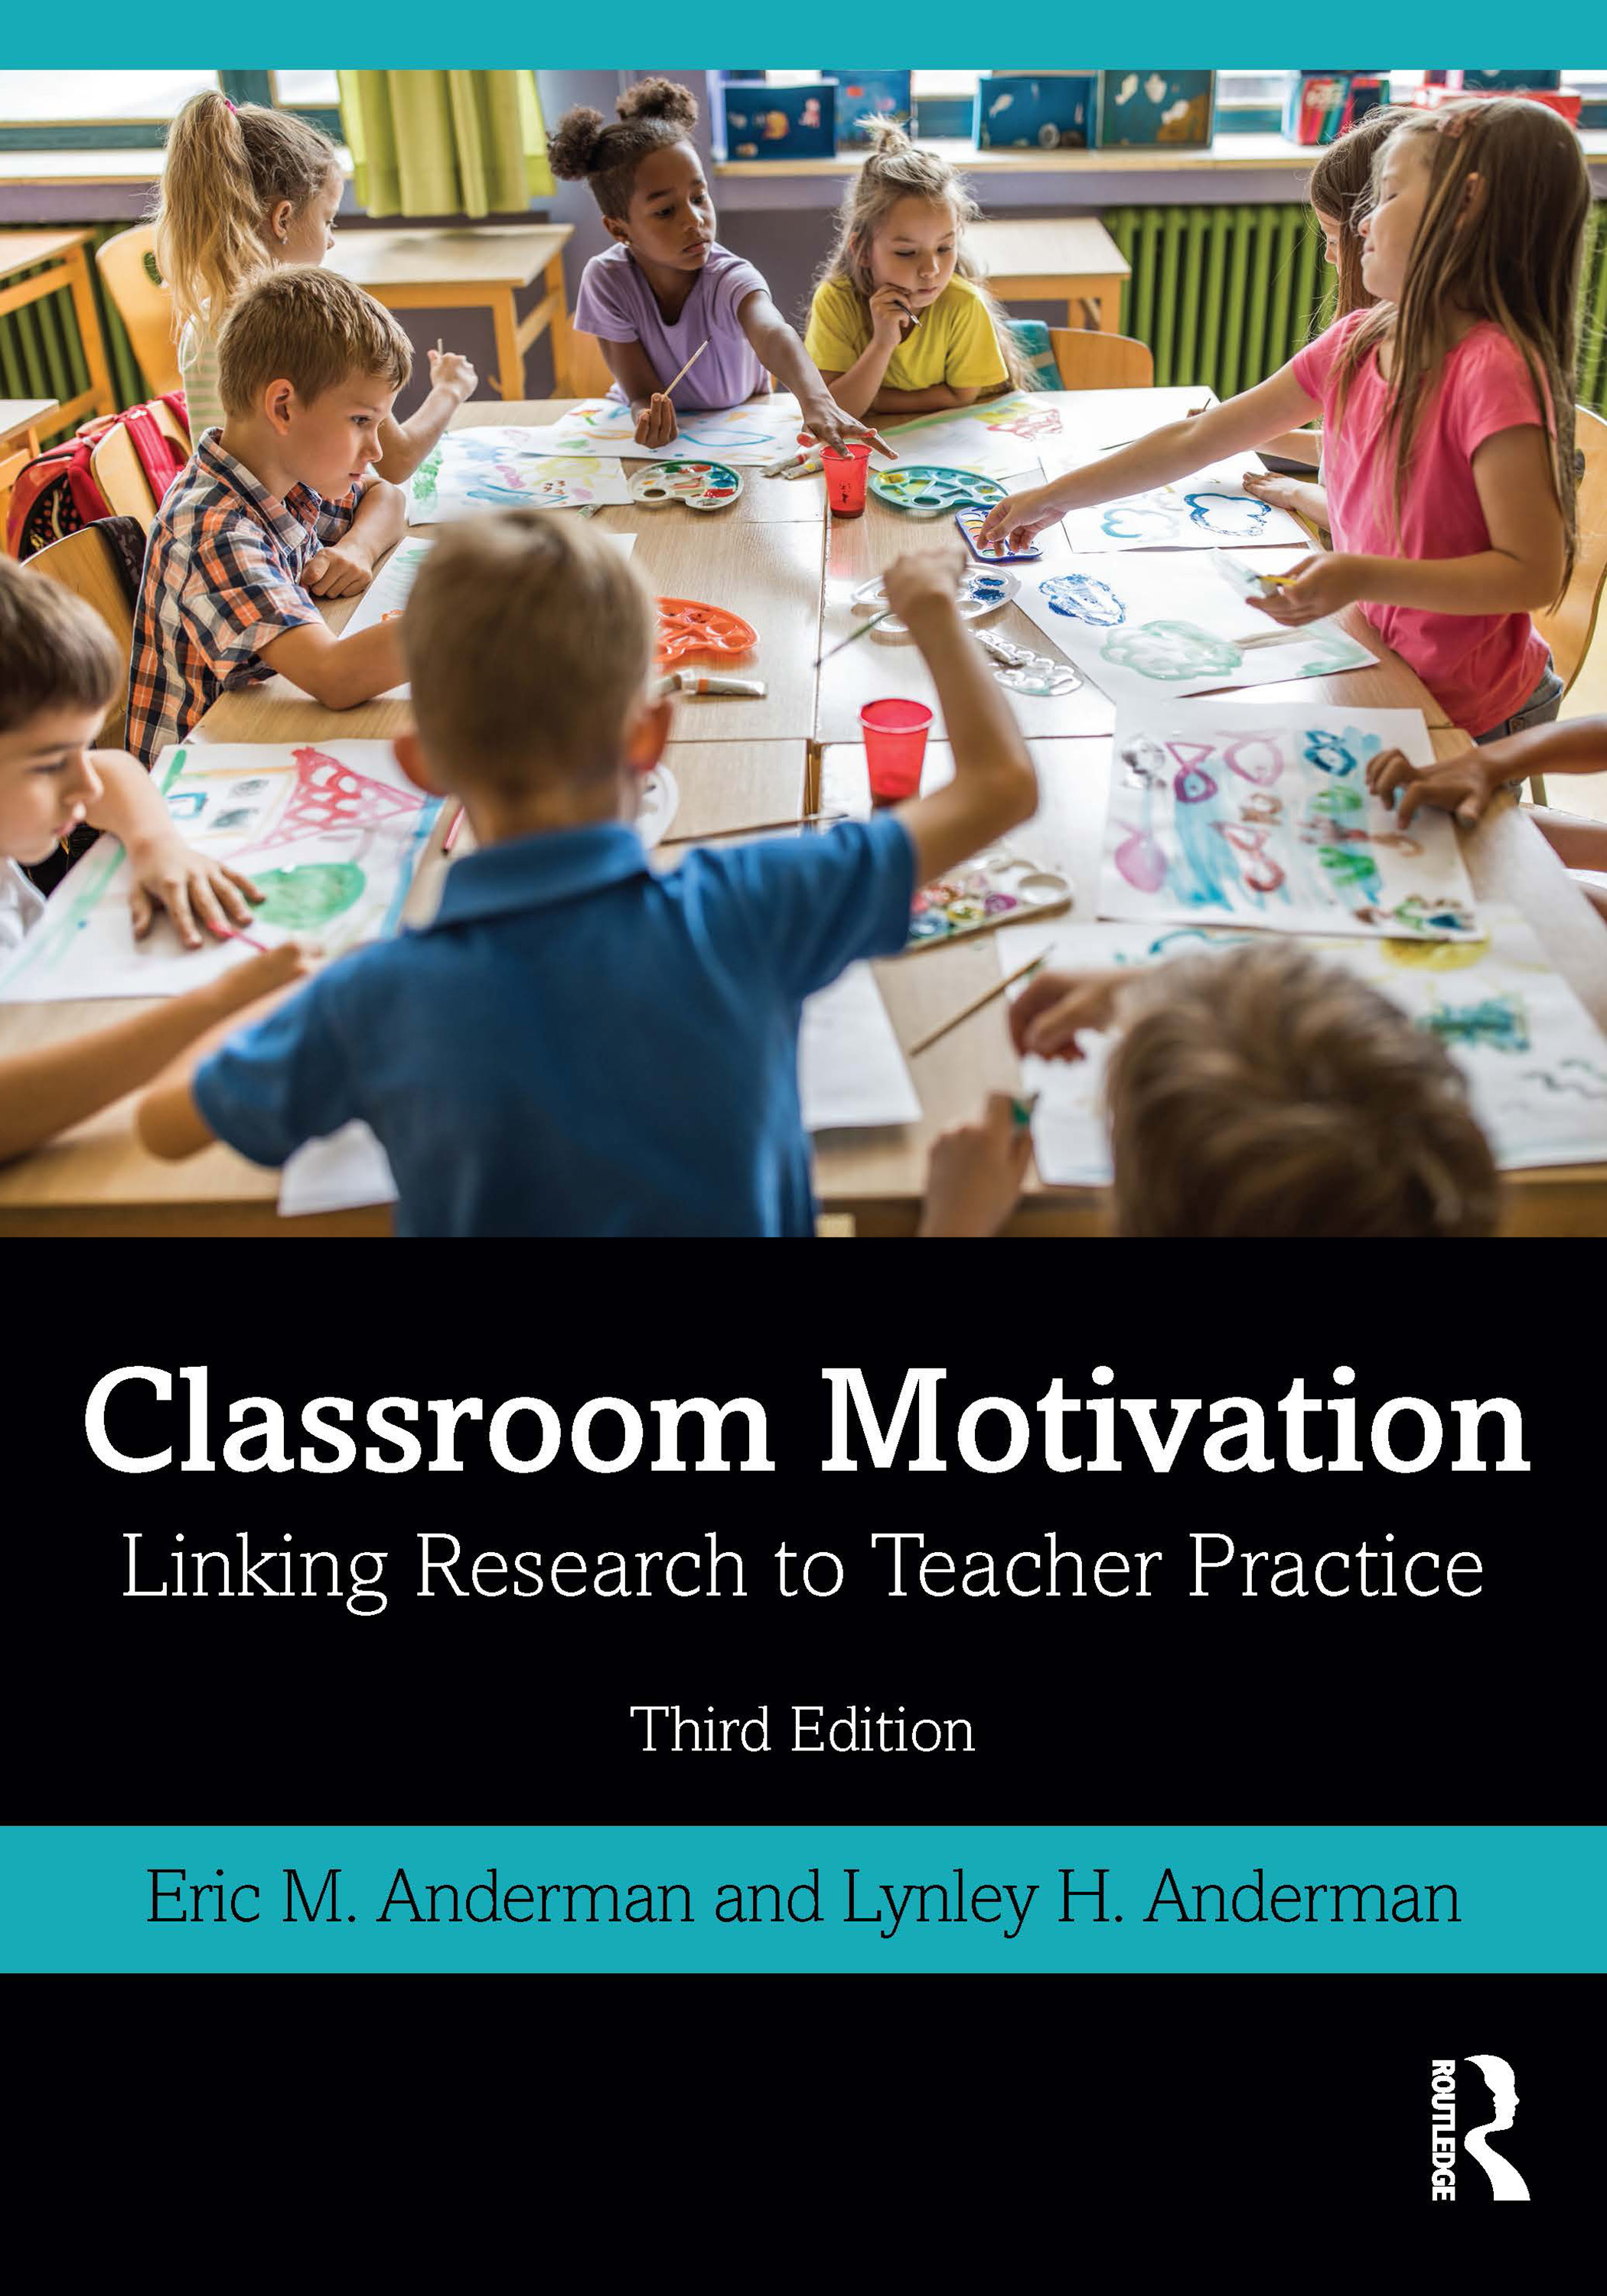 Social Relationships With Teachers and Peers